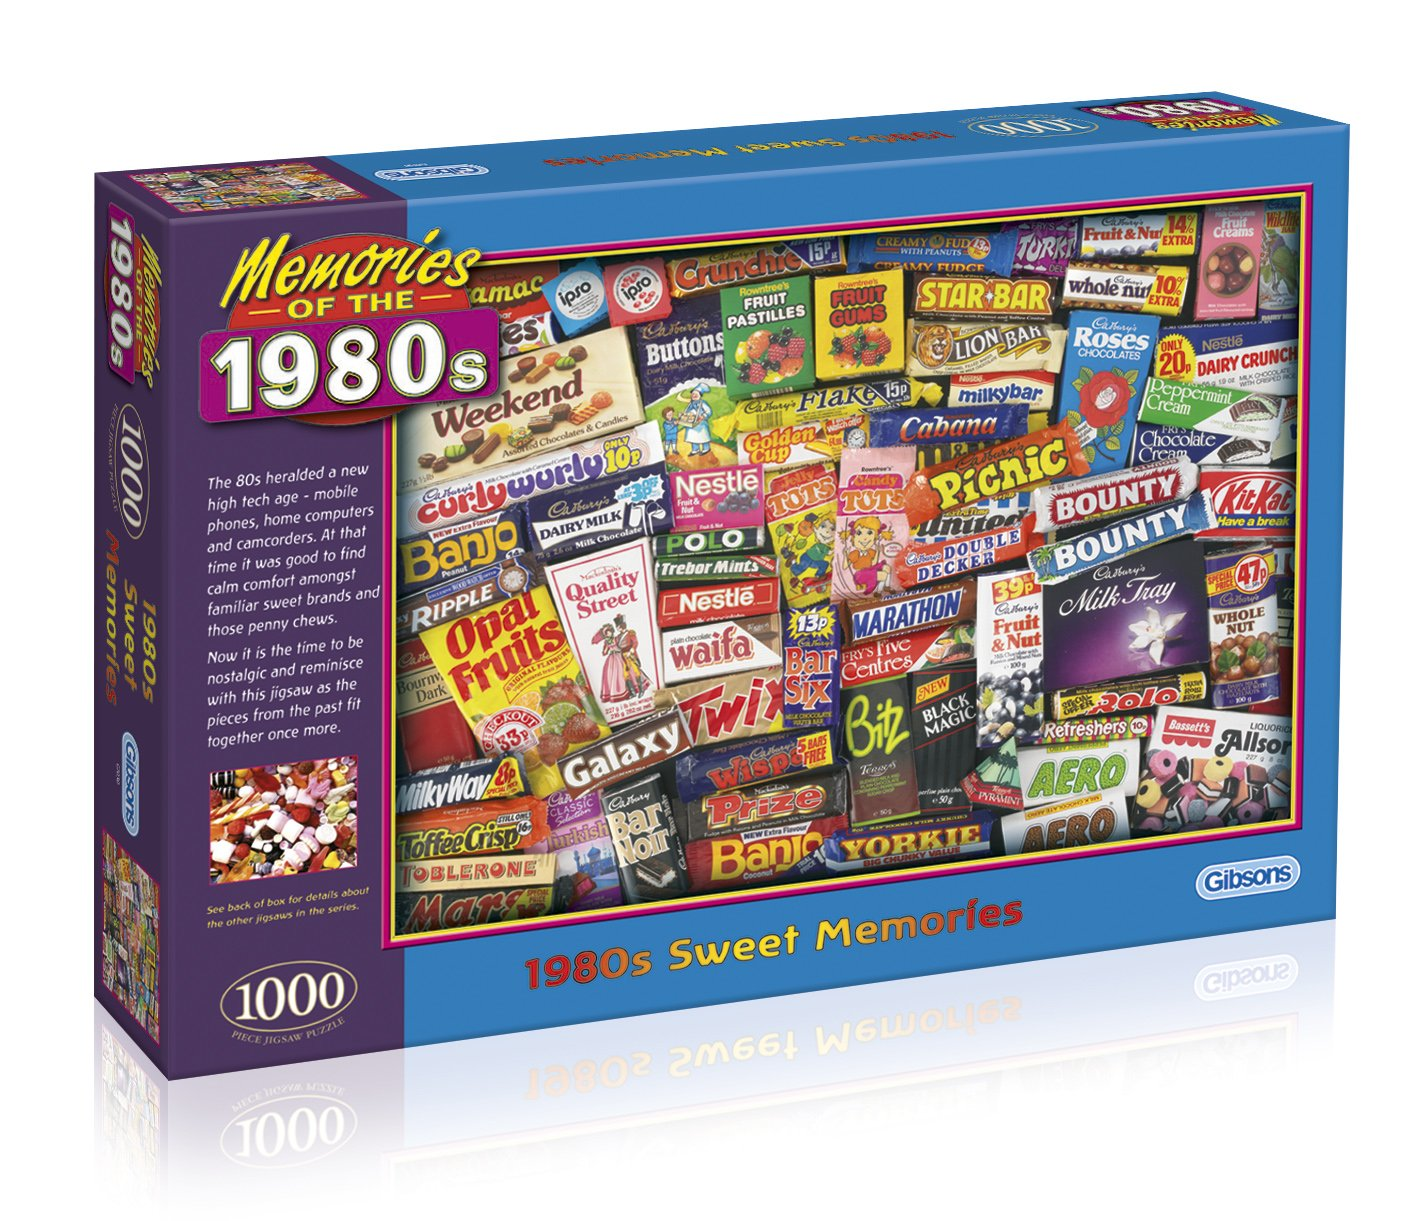 Memories of the 1980s Jigsaw Puzzle (1000 pieces). Featuring classic sweets and chocolate bars.